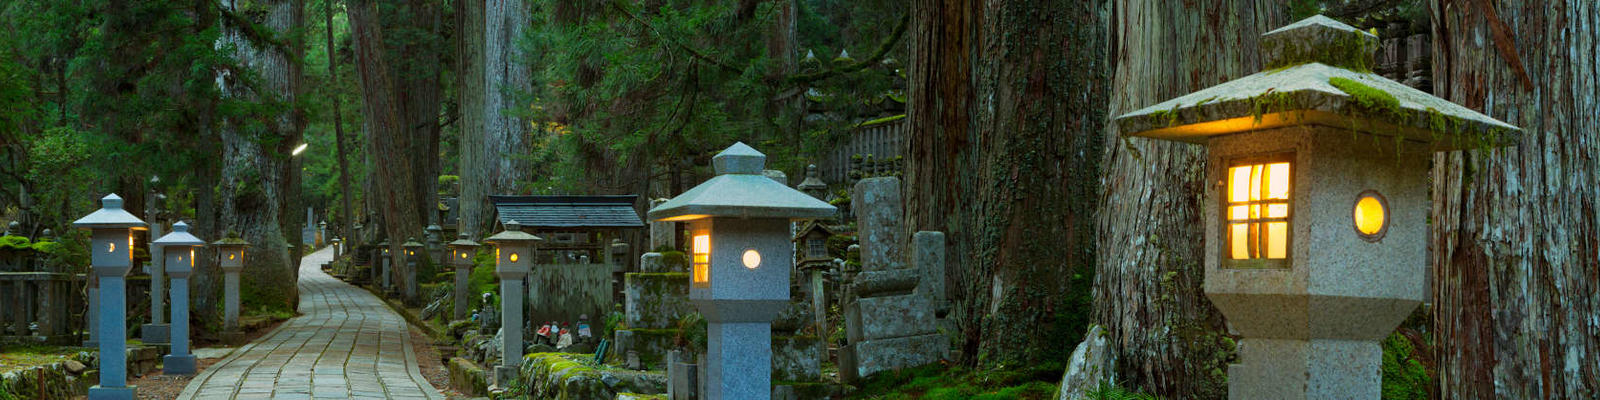 20 Of The World's Most Beautiful Cemeteries